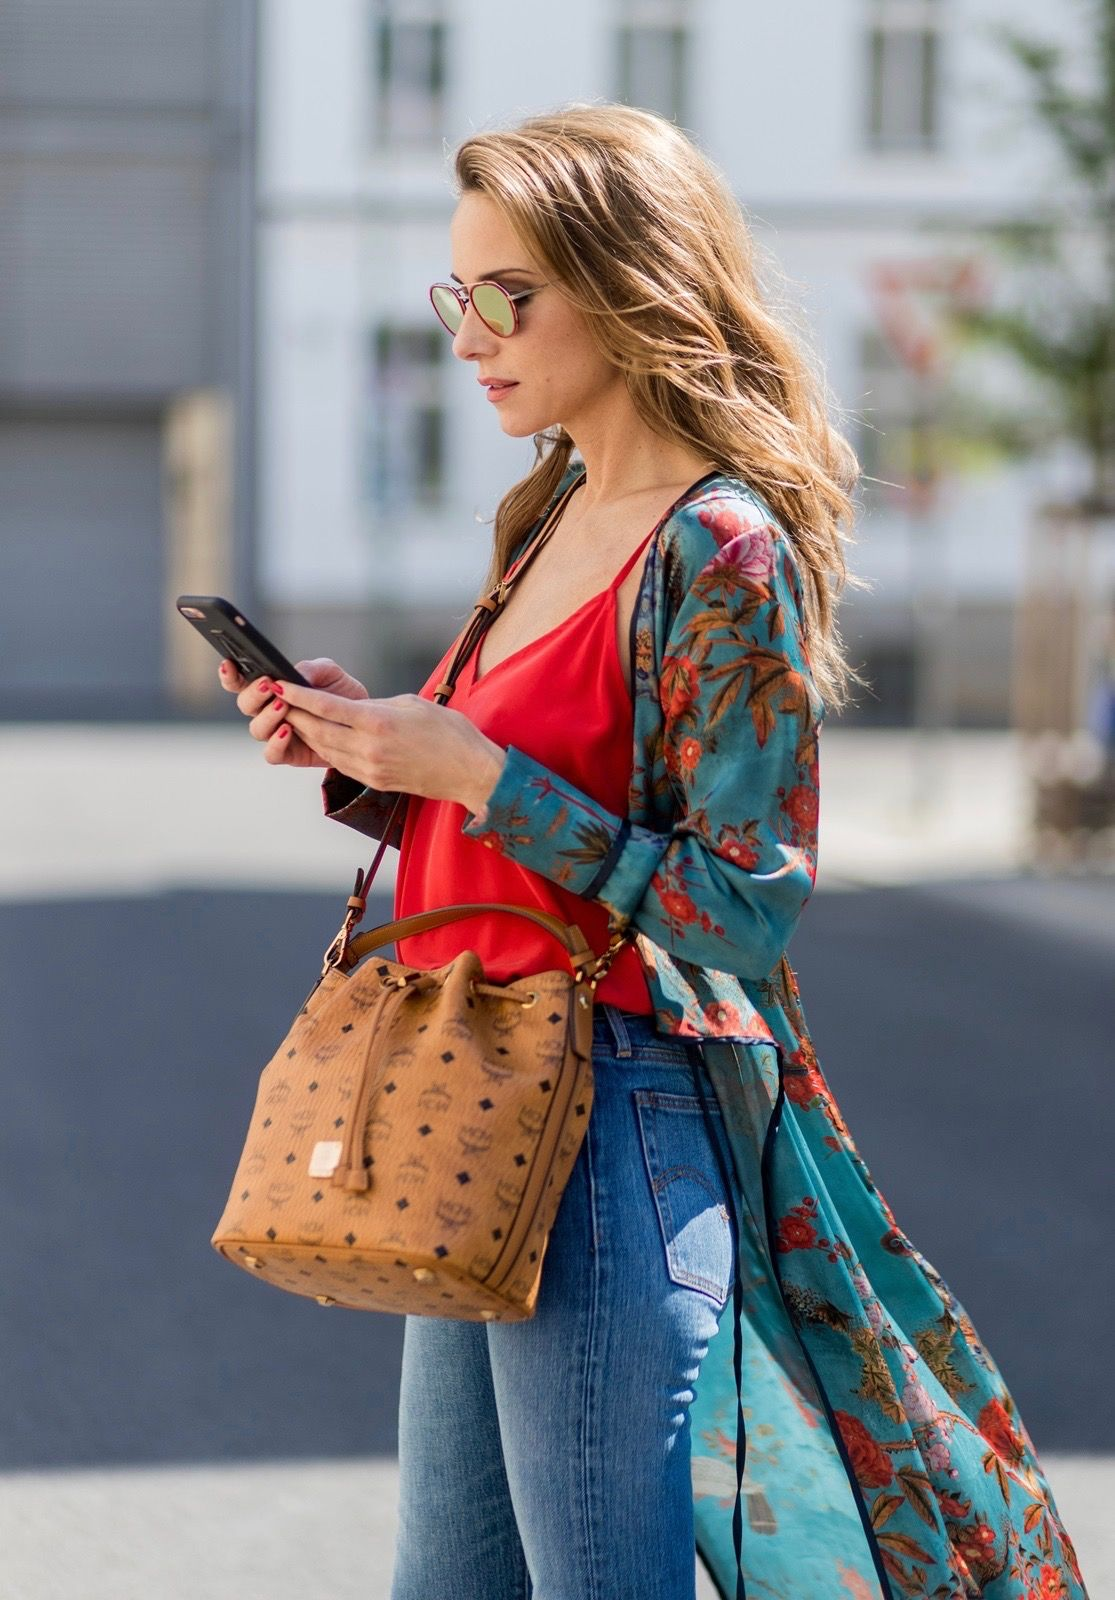 461a28bc Model and fashion blogger Alexandra Lapp wearing a wrap dress in Kimono  style from Zara, silk tank top from Jadicted, petite bucket bag from MCM,  ...